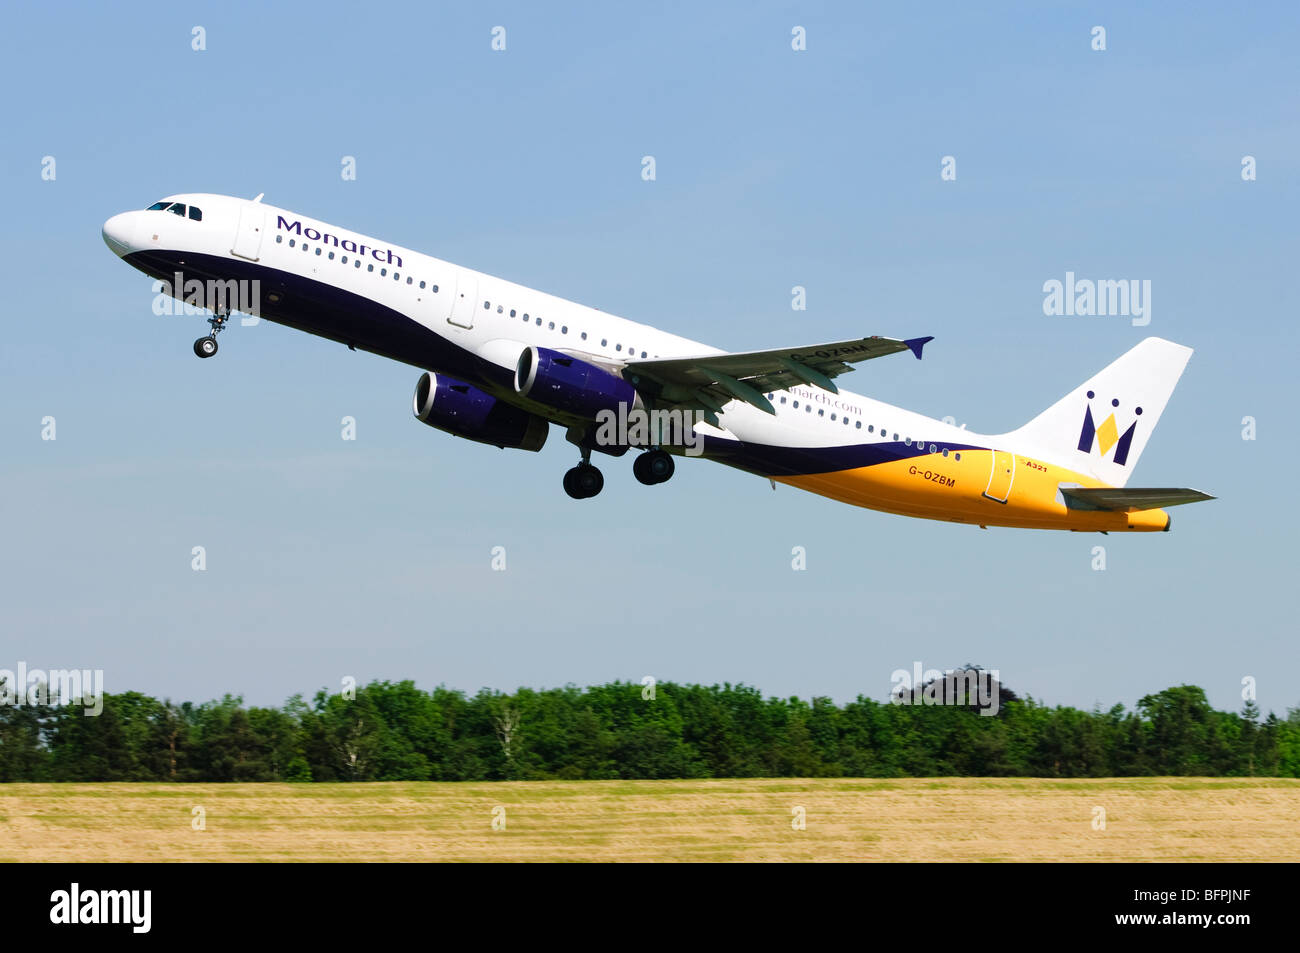 Airbus A321 operated by Monarch Airlines taking off from Birmingham Airport, UK. Stock Photo